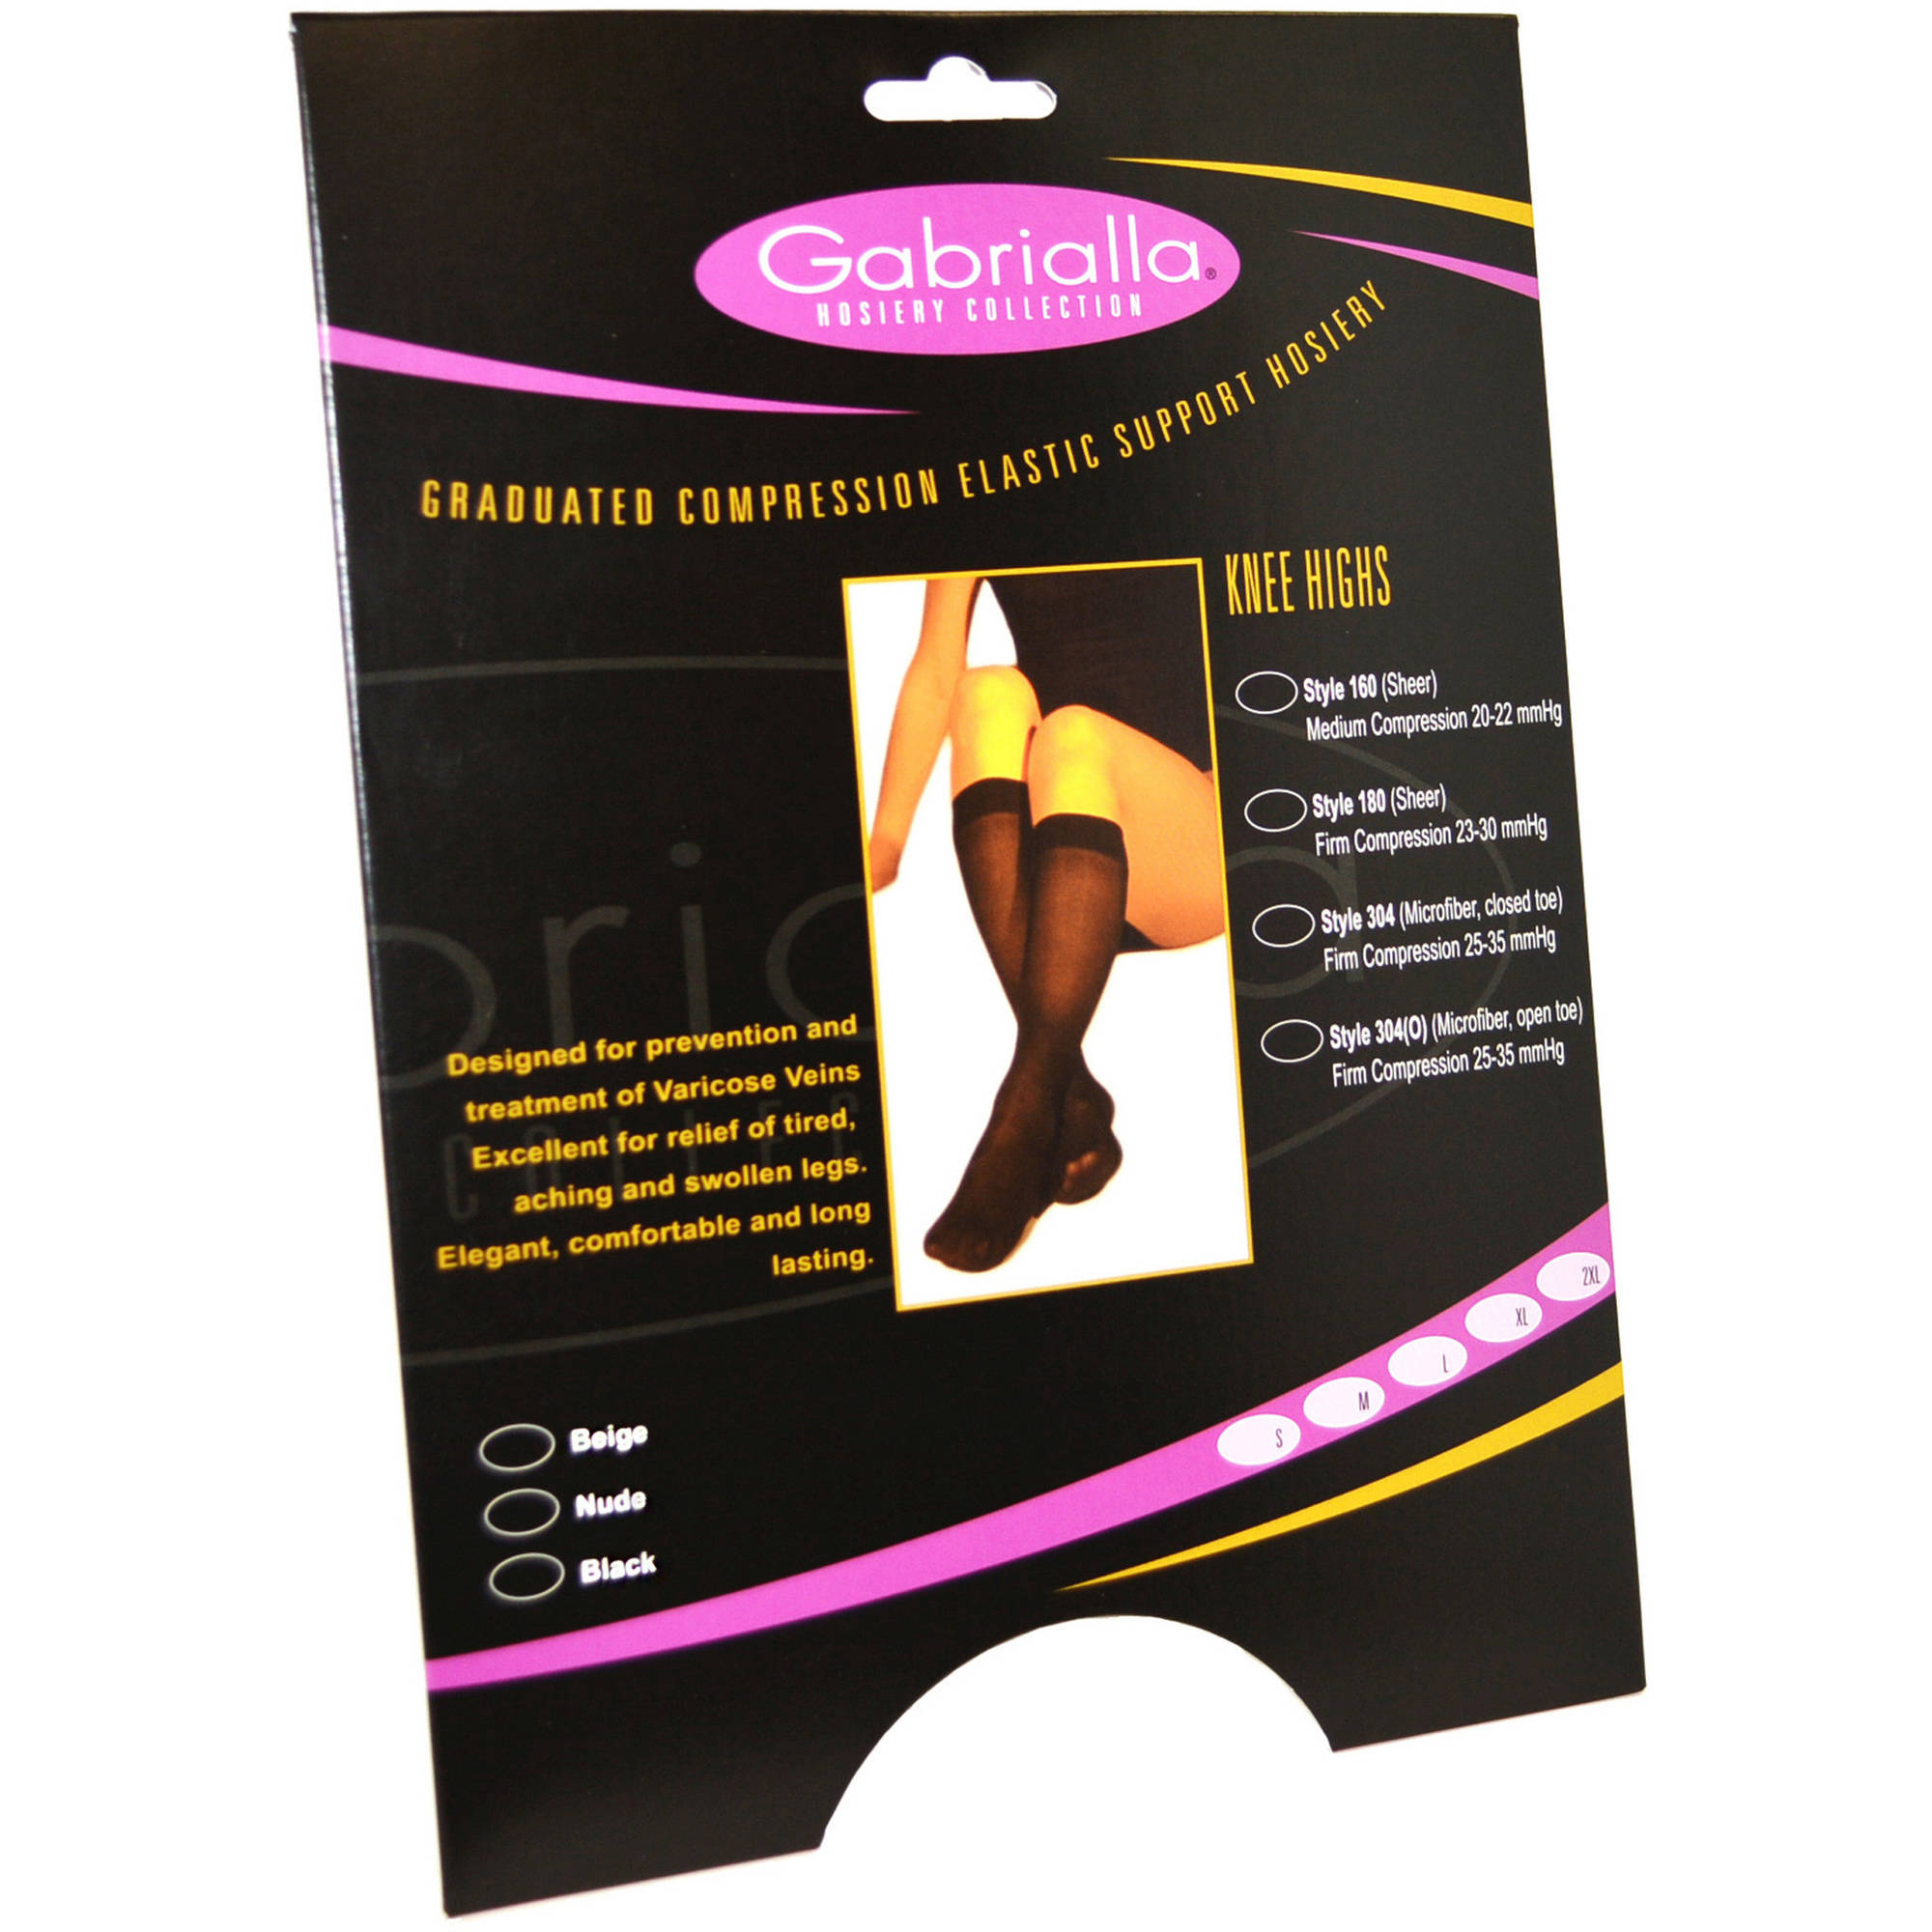 GABRIALLA Sheer Knee Highs - Compression (23-30 mmHg): H-180